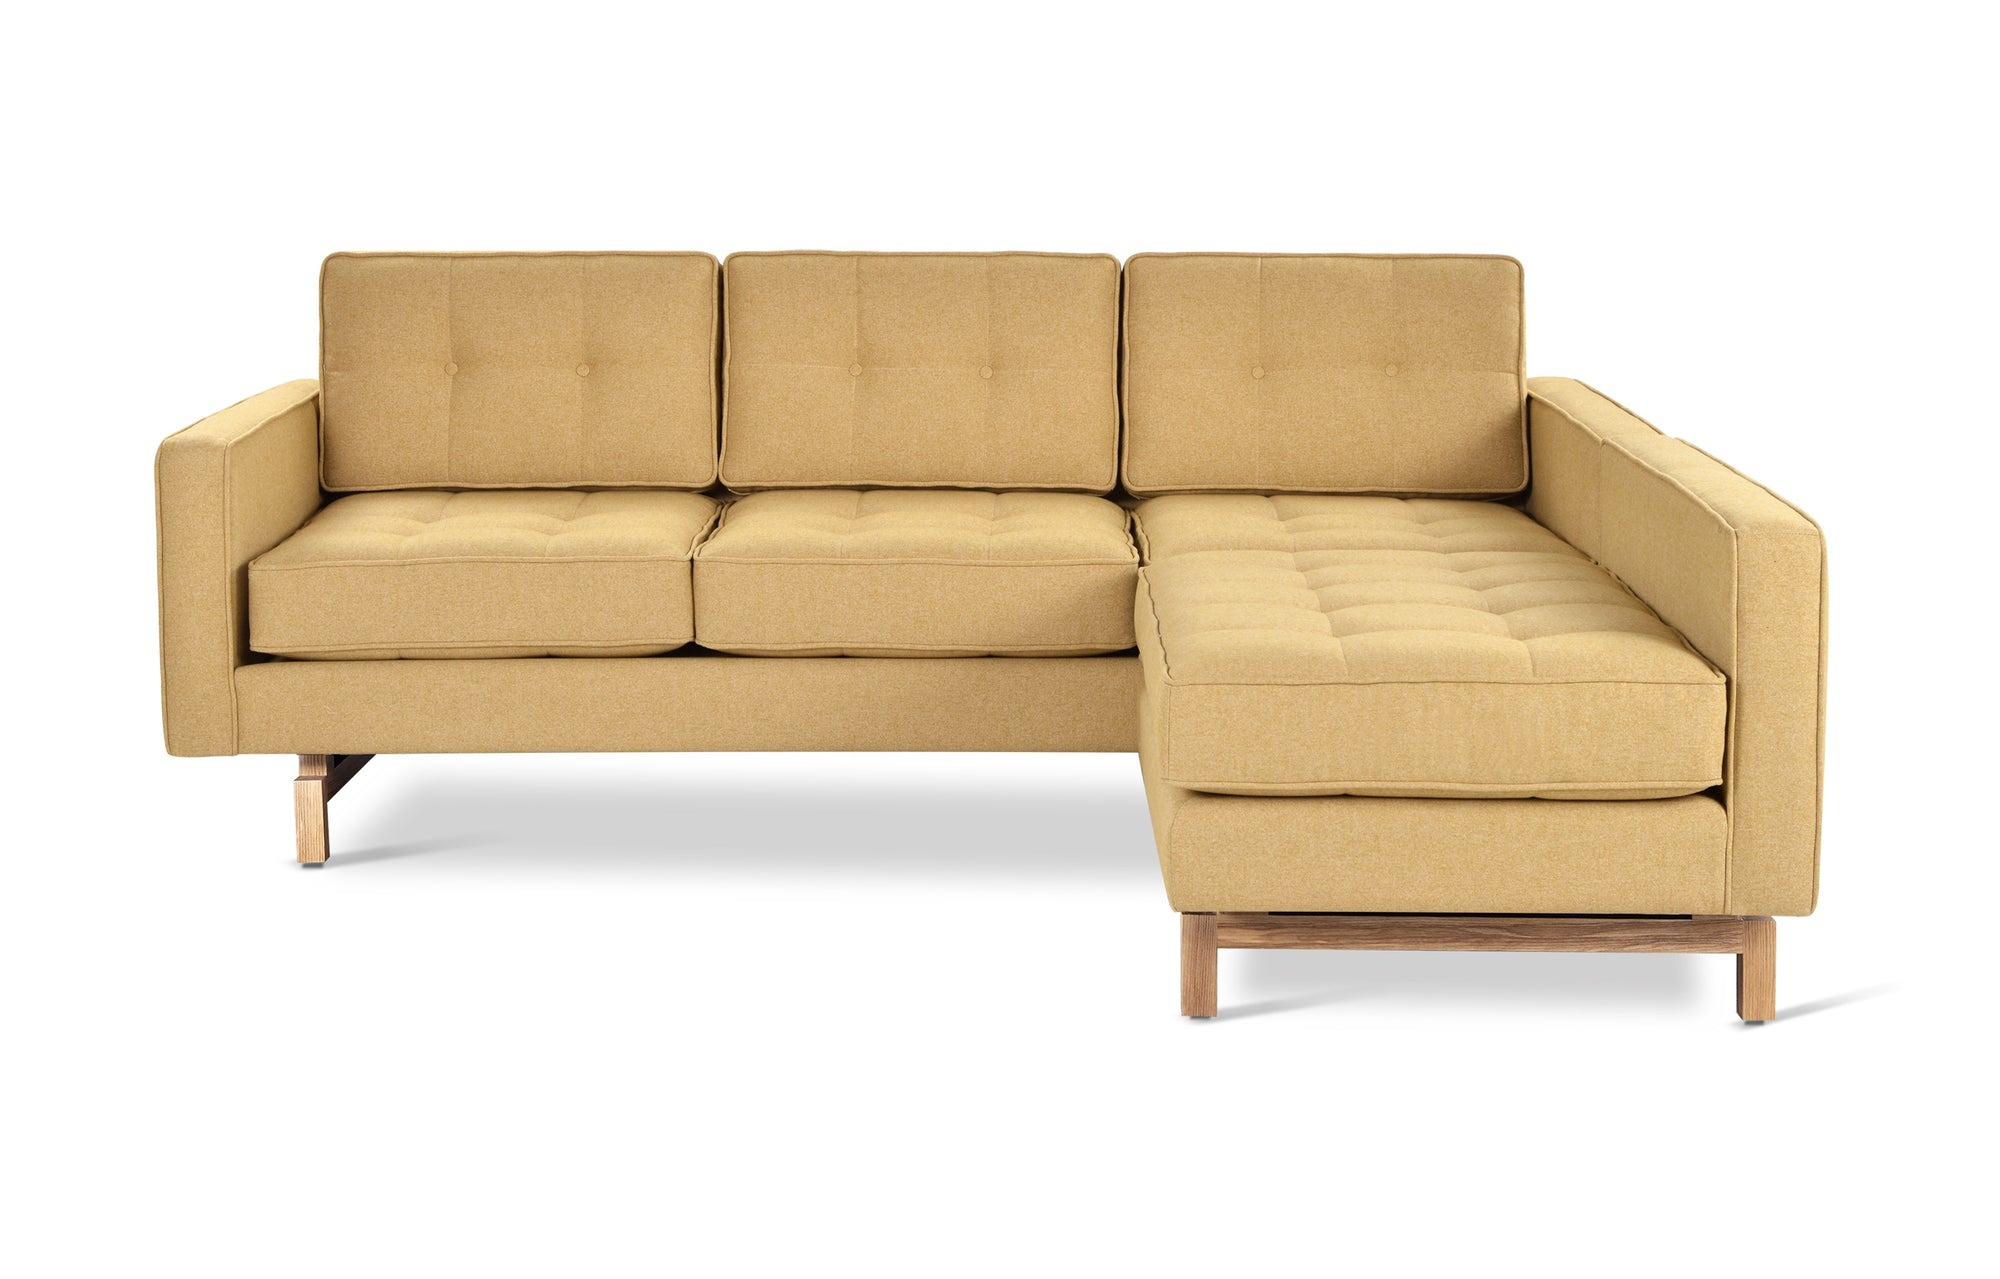 Gus* Modern Jane 2 LOFT Bi-Sectional